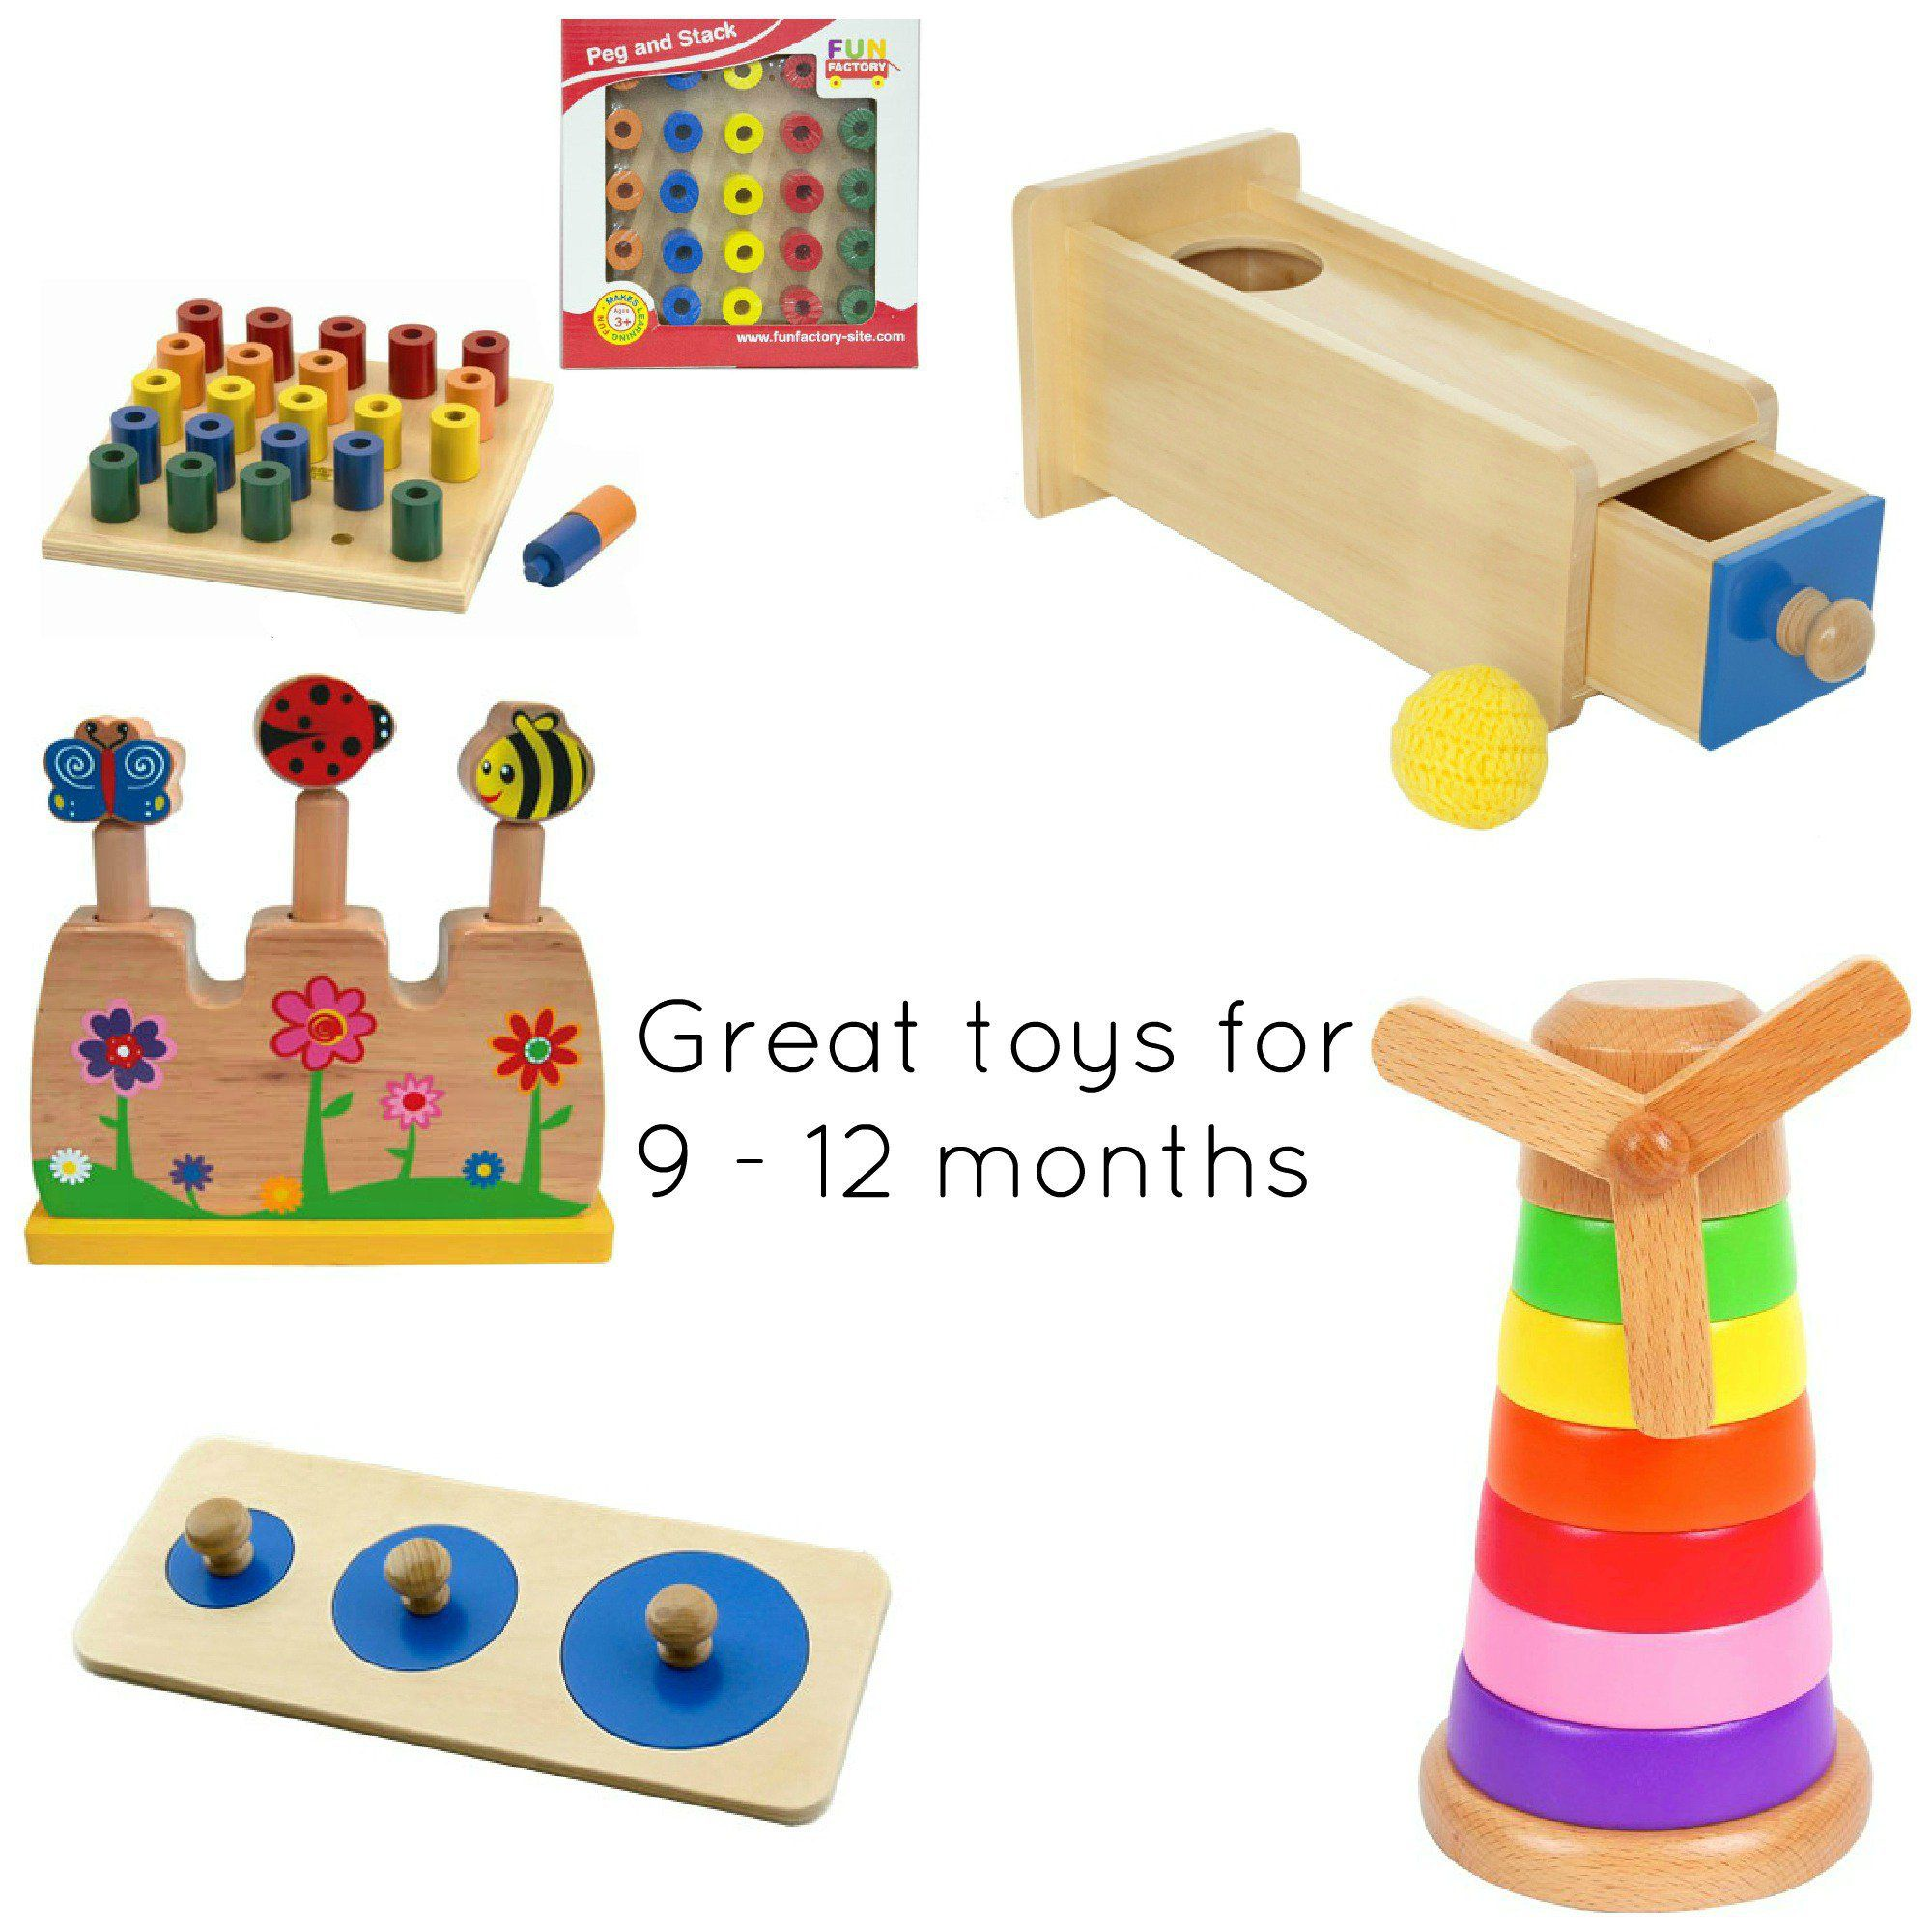 Toy re mendations for a 9 12 month old